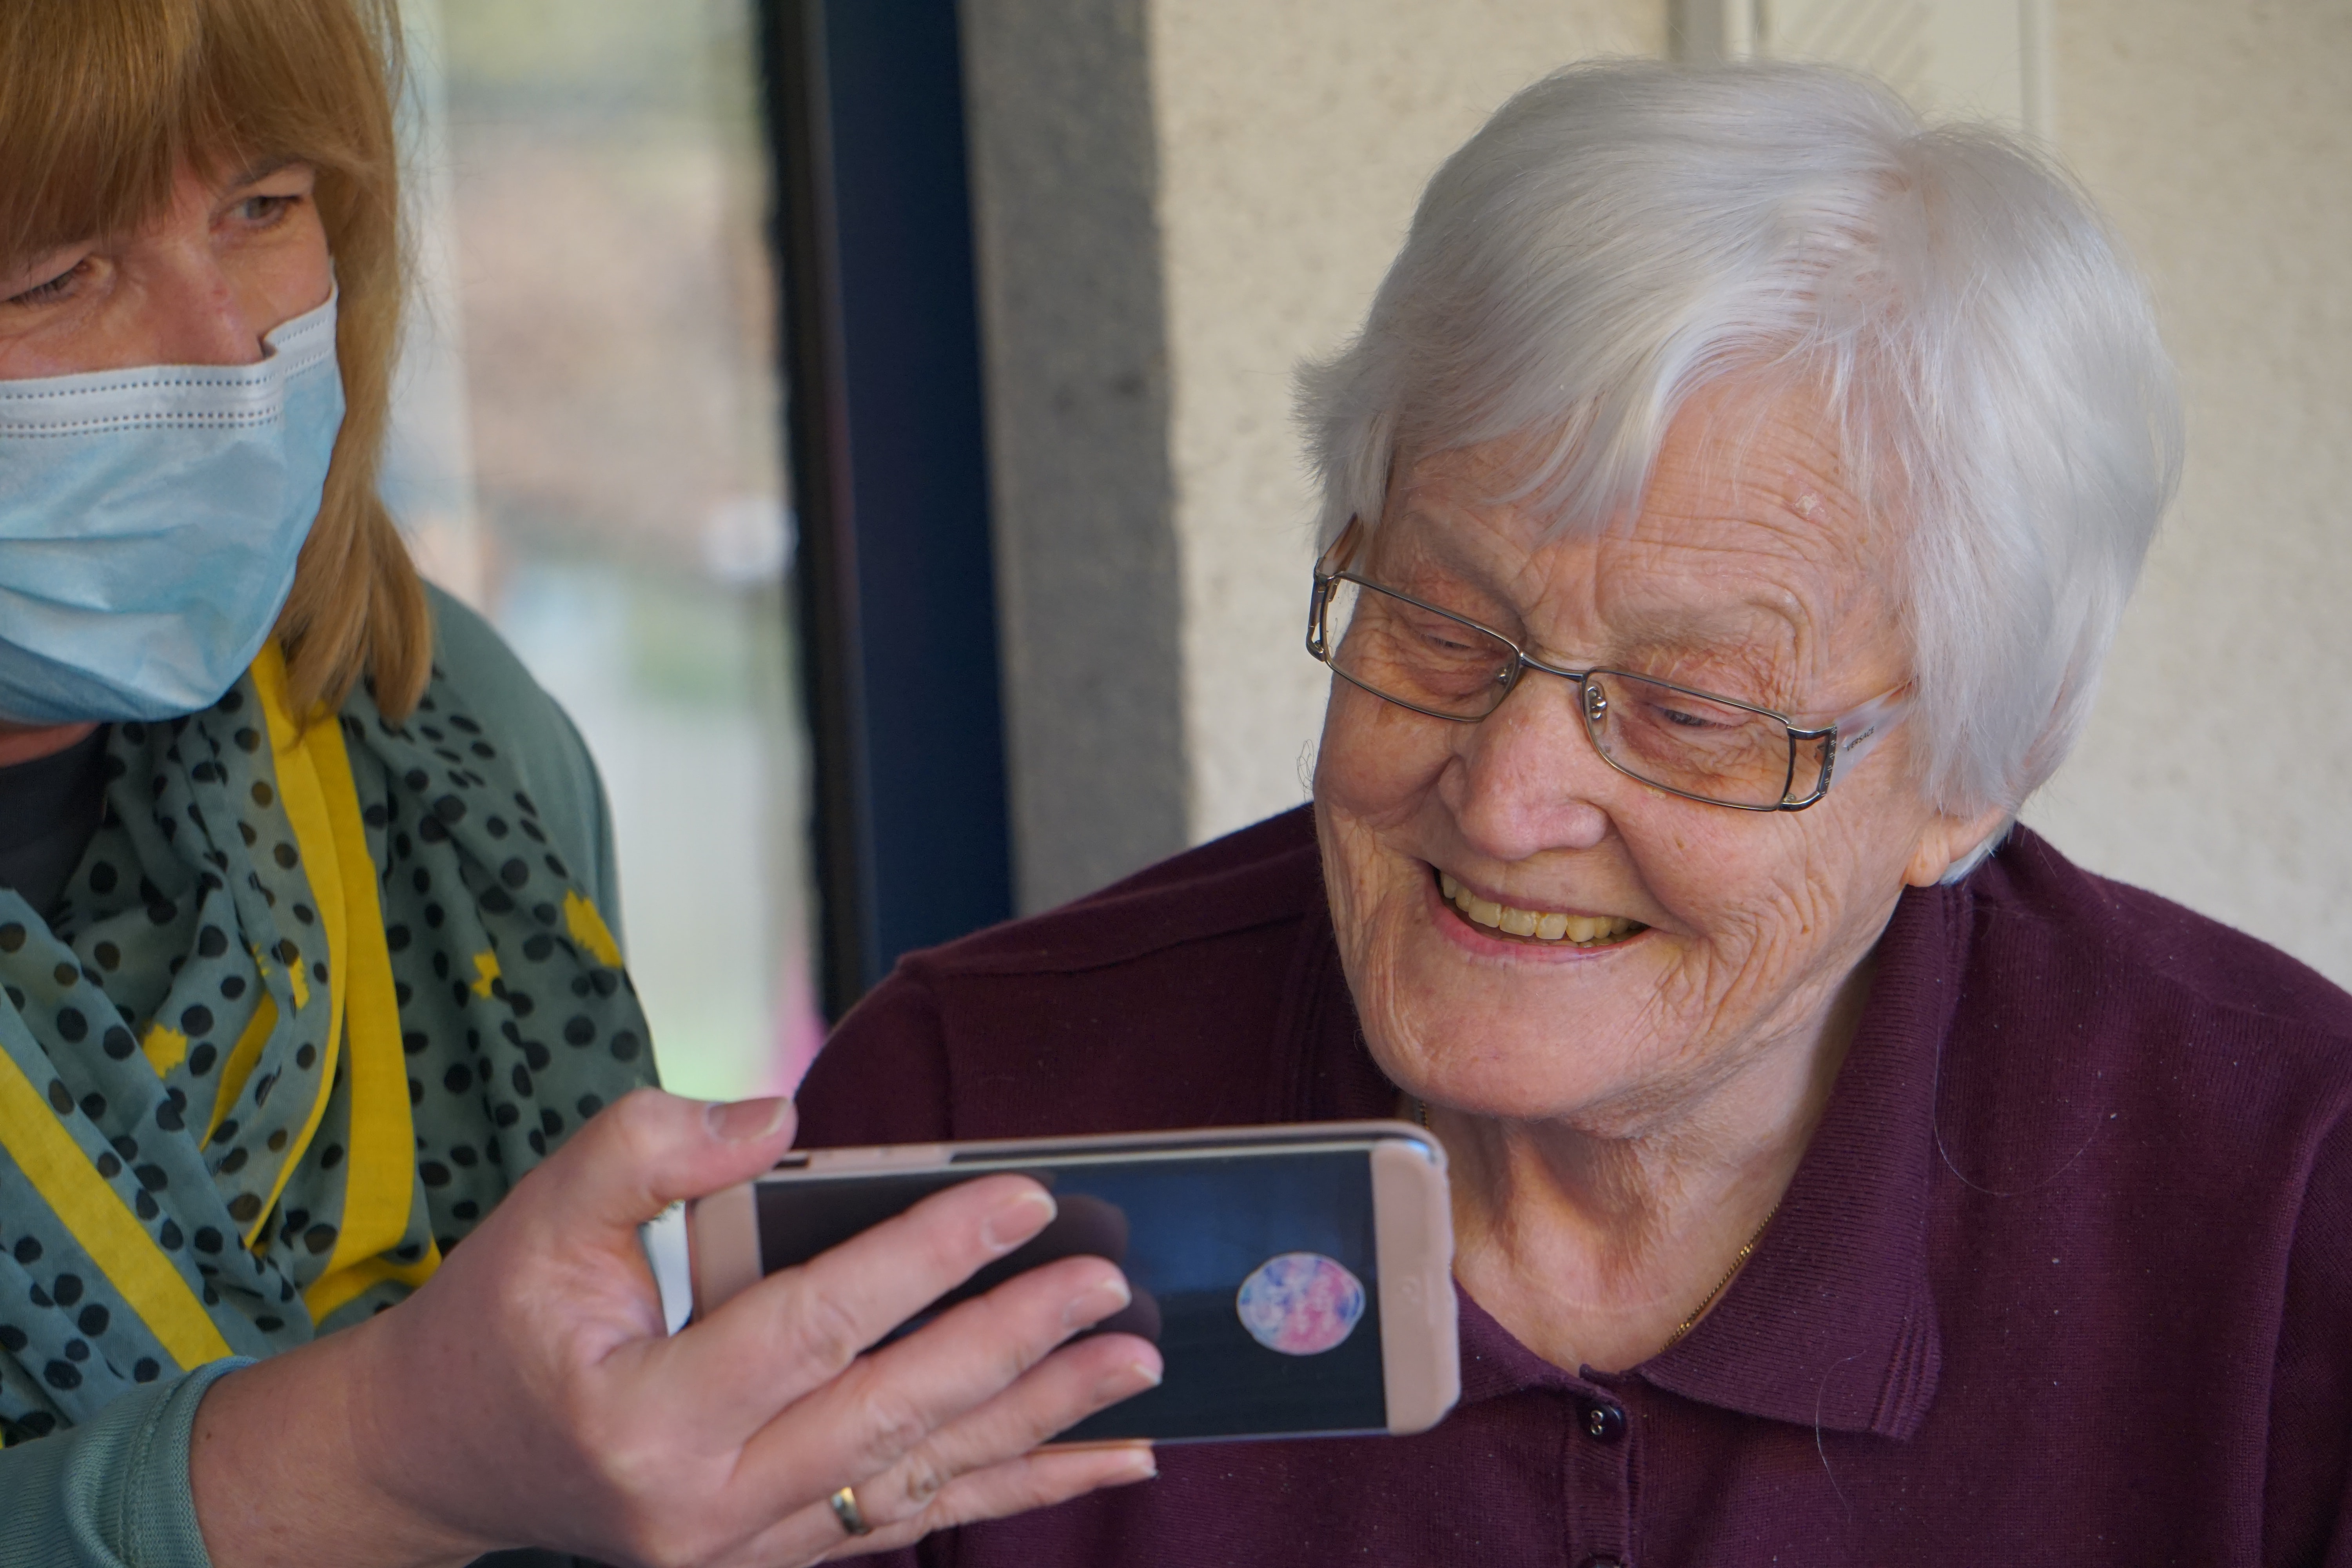 Re-Opening An Adult Day Care: 5 Ways Going Digital Can Help Your Center Thrive